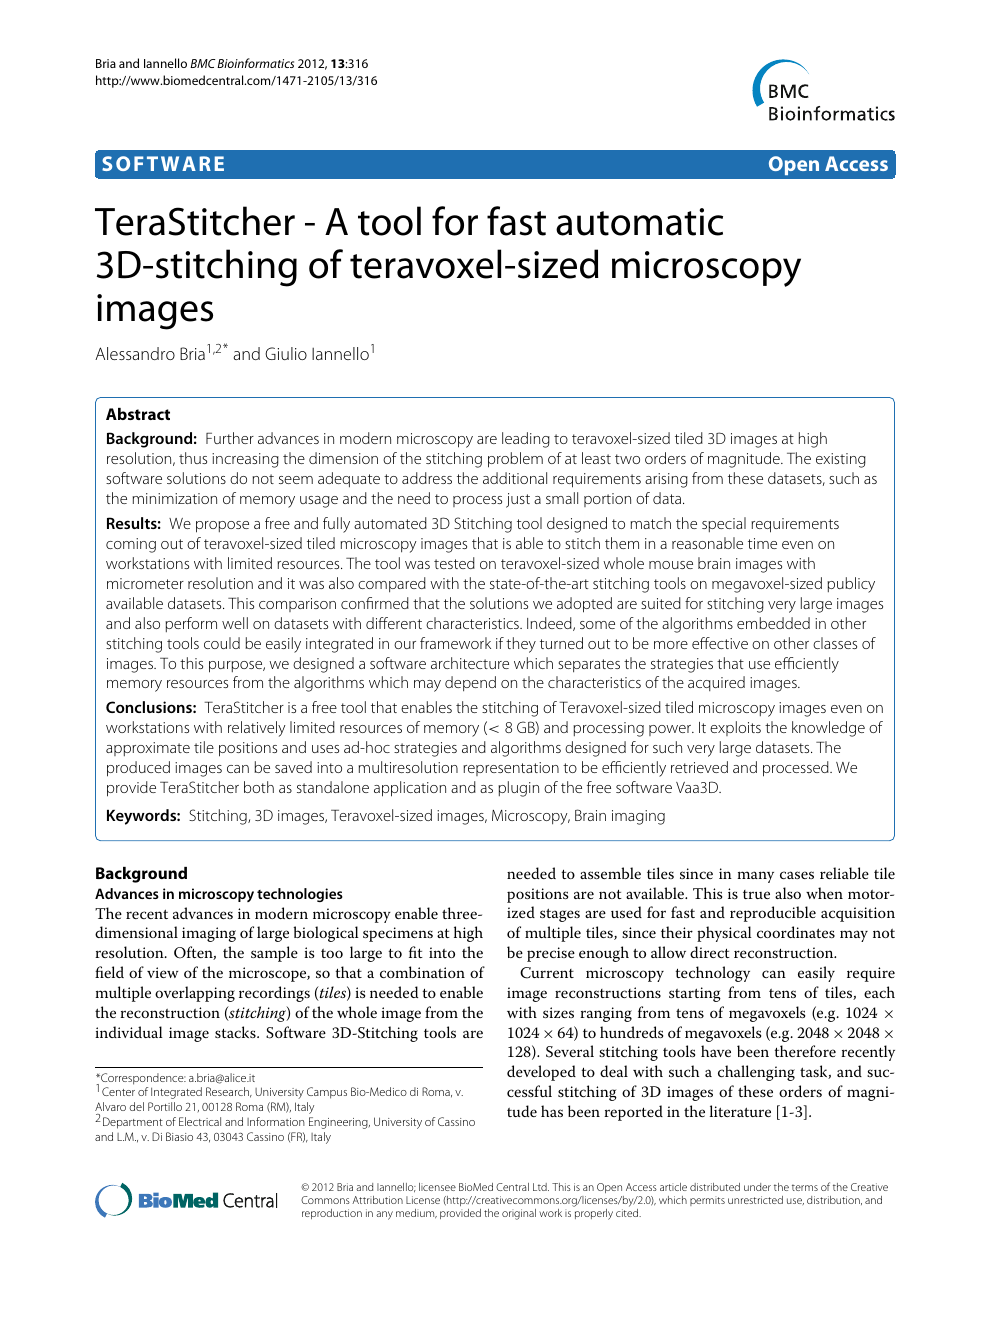 TeraStitcher - A tool for fast automatic 3D-stitching of teravoxel